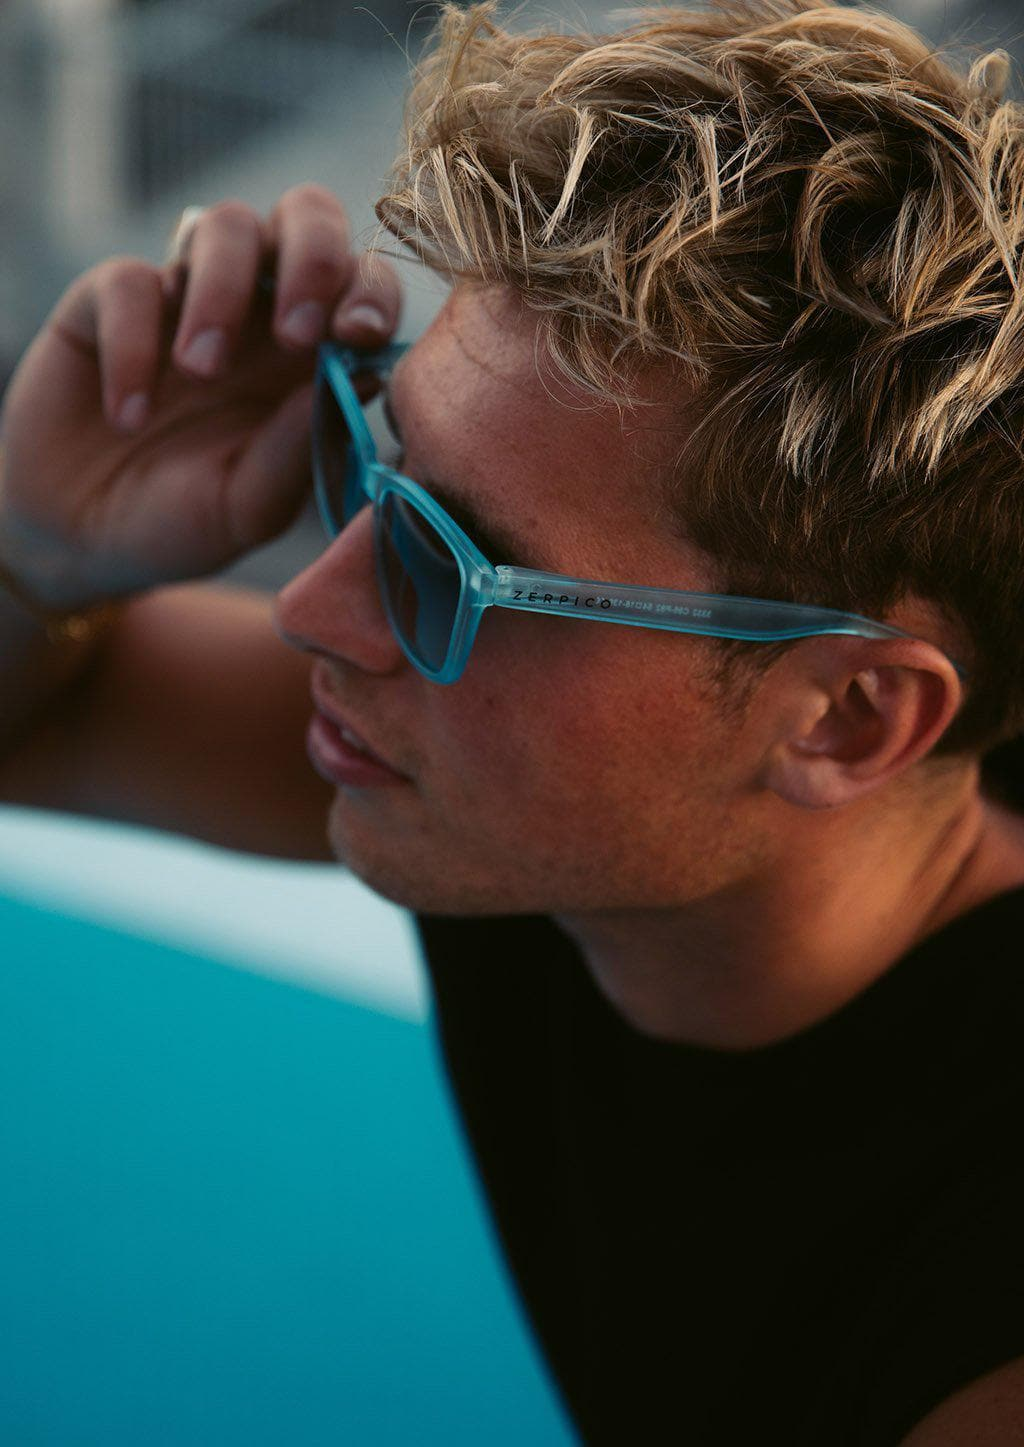 Our Mood V2 is an improved version of our last wayfarers. Plastic body for great quality and durabilty. This is Belize with blue frame and blue lenses. On male model.